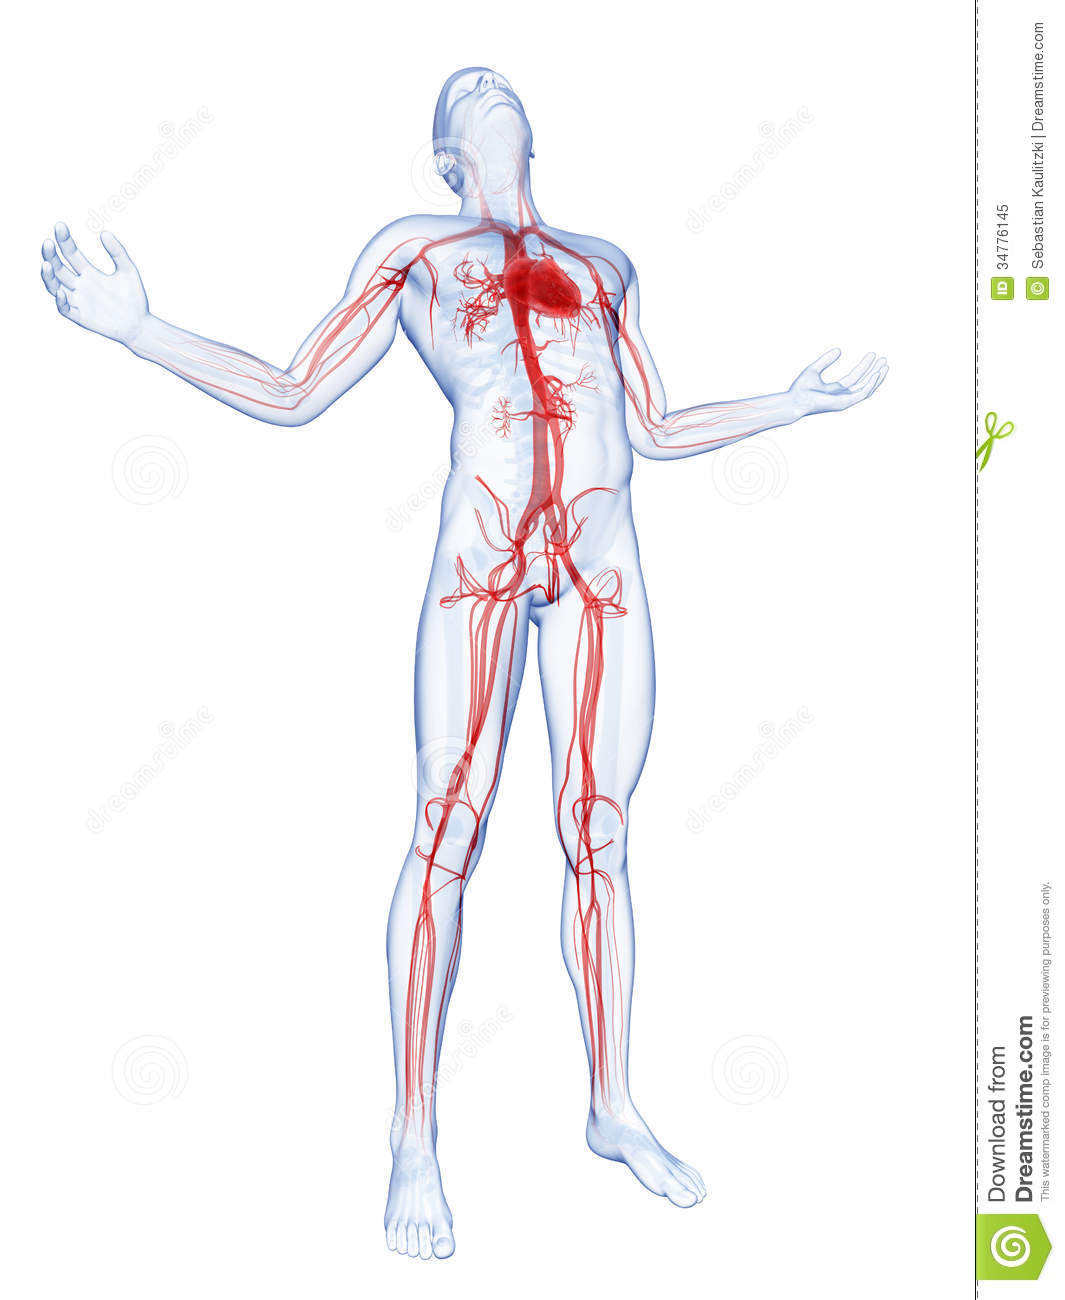 Royalty Free Stock Photo Visible Vascular System D Rendered Illustration Male Posing Image34776145 on brain arterial system